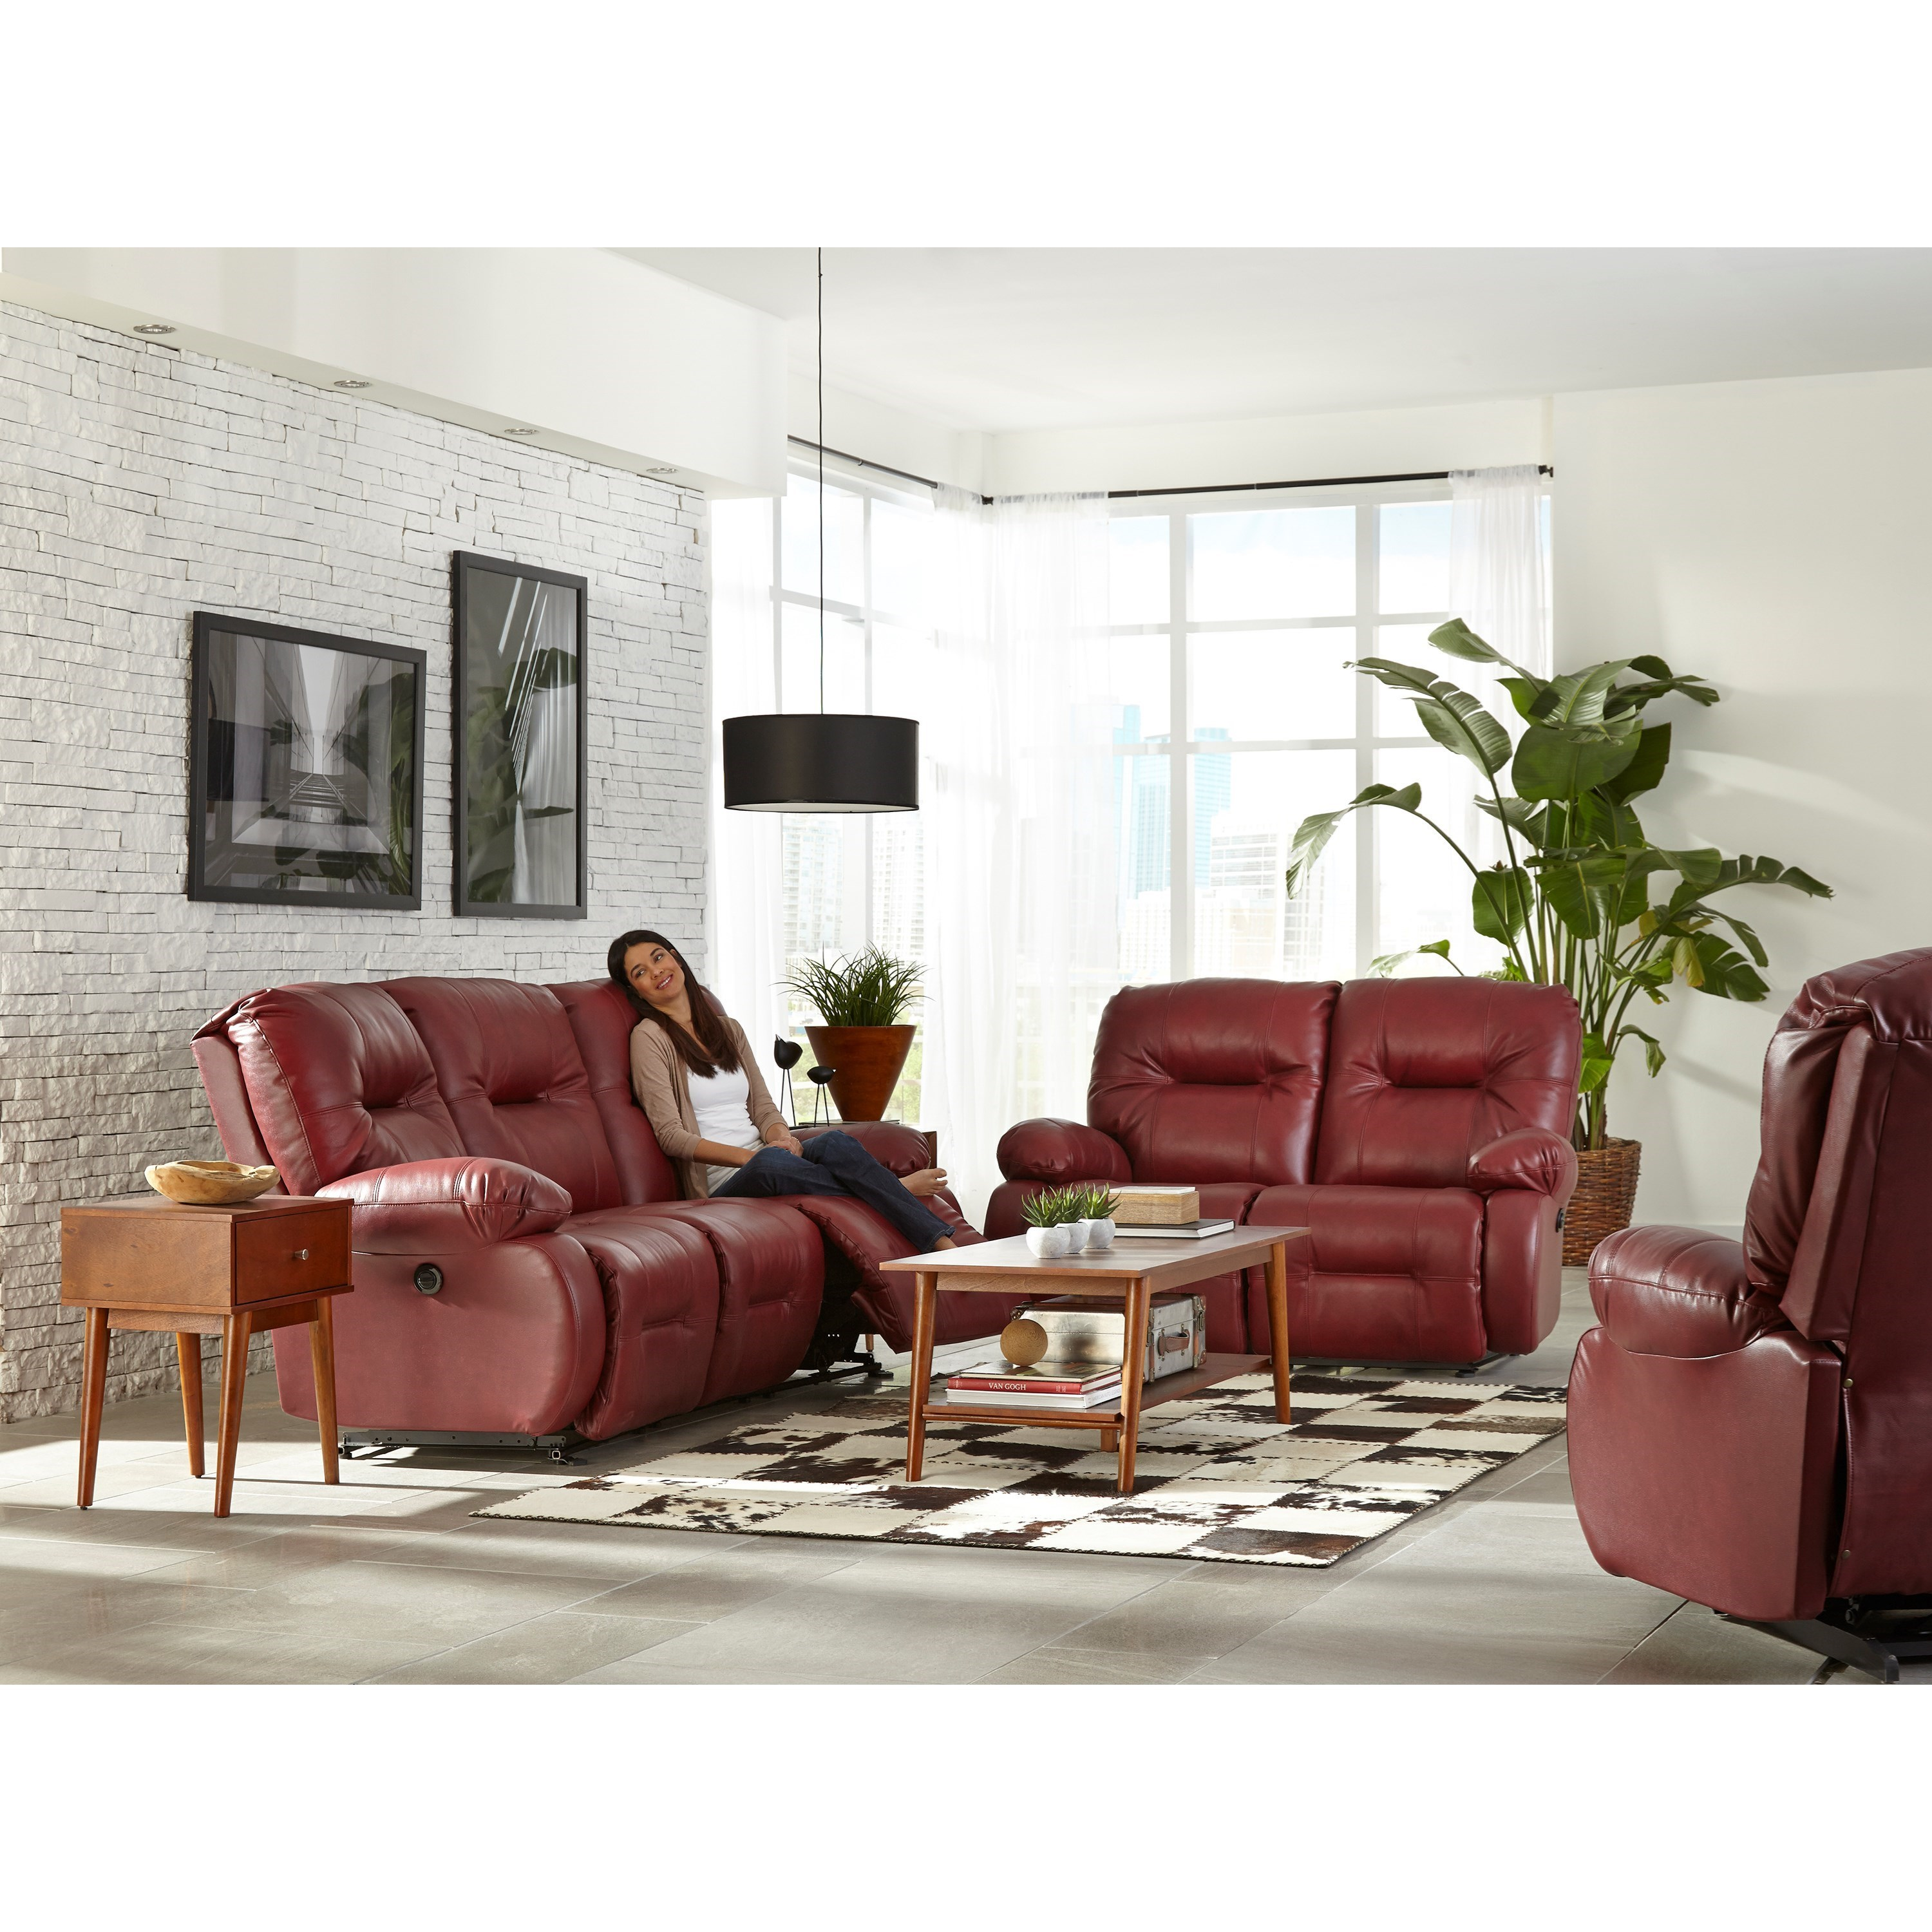 Brinley 2 Reclining Living Room Group by Best Home Furnishings at Best Home Furnishings